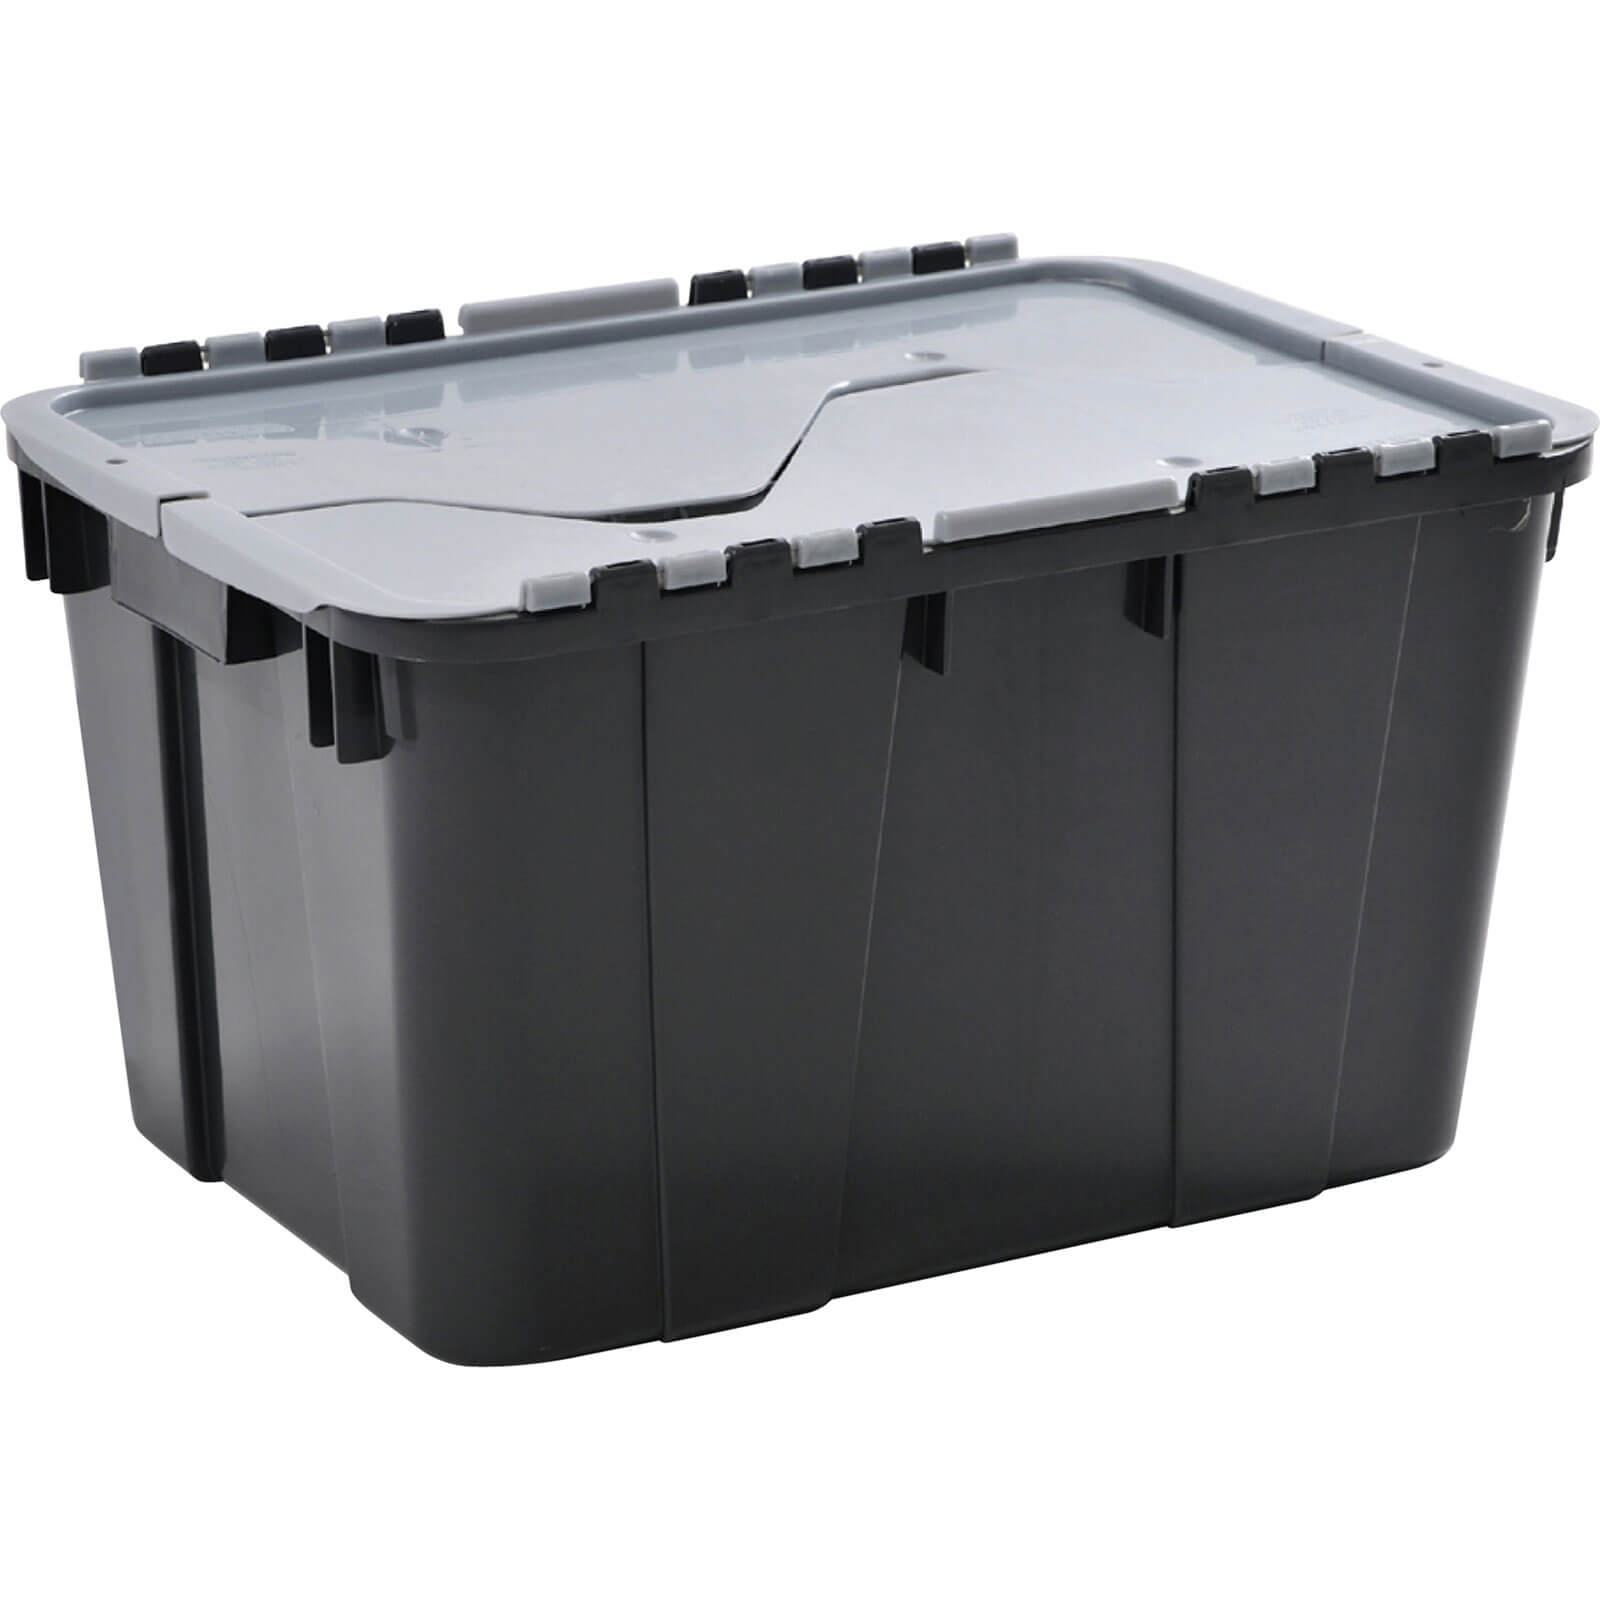 Image of Contico Shatterproof Tuff Storage Crate 55l